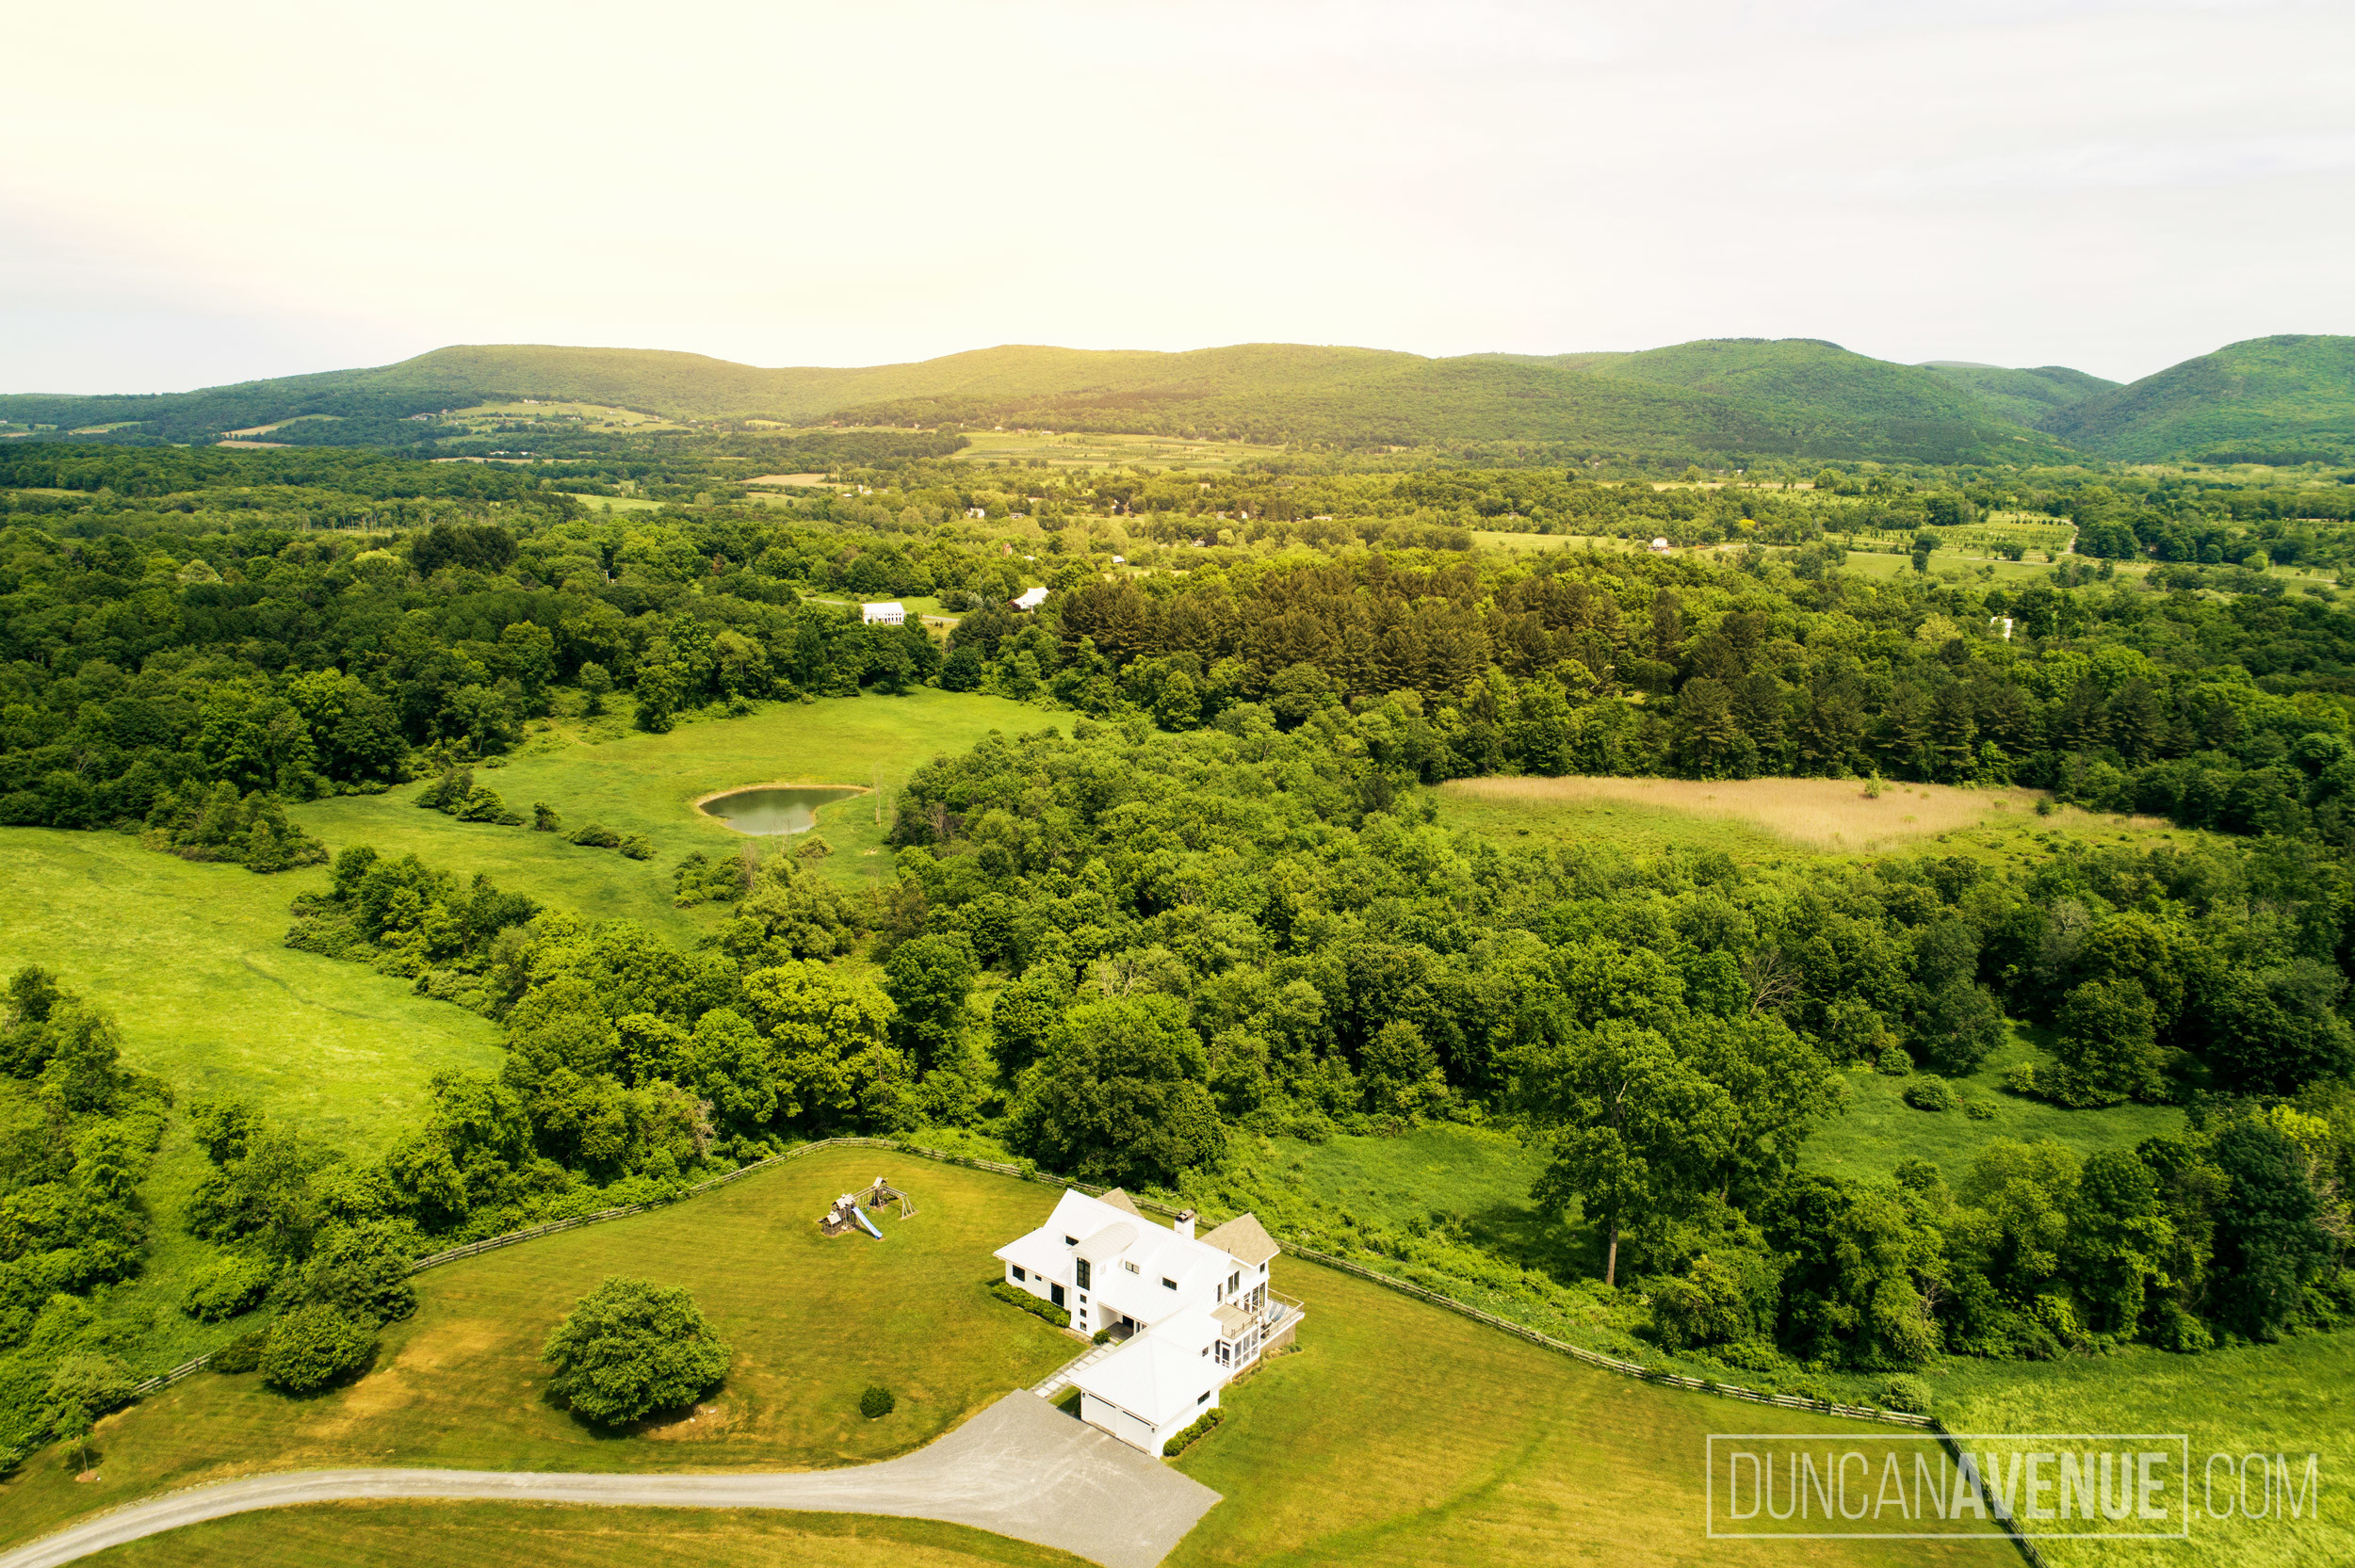 Copake Lake New York Estate - Real Estate Photography by Duncan Avenue Group